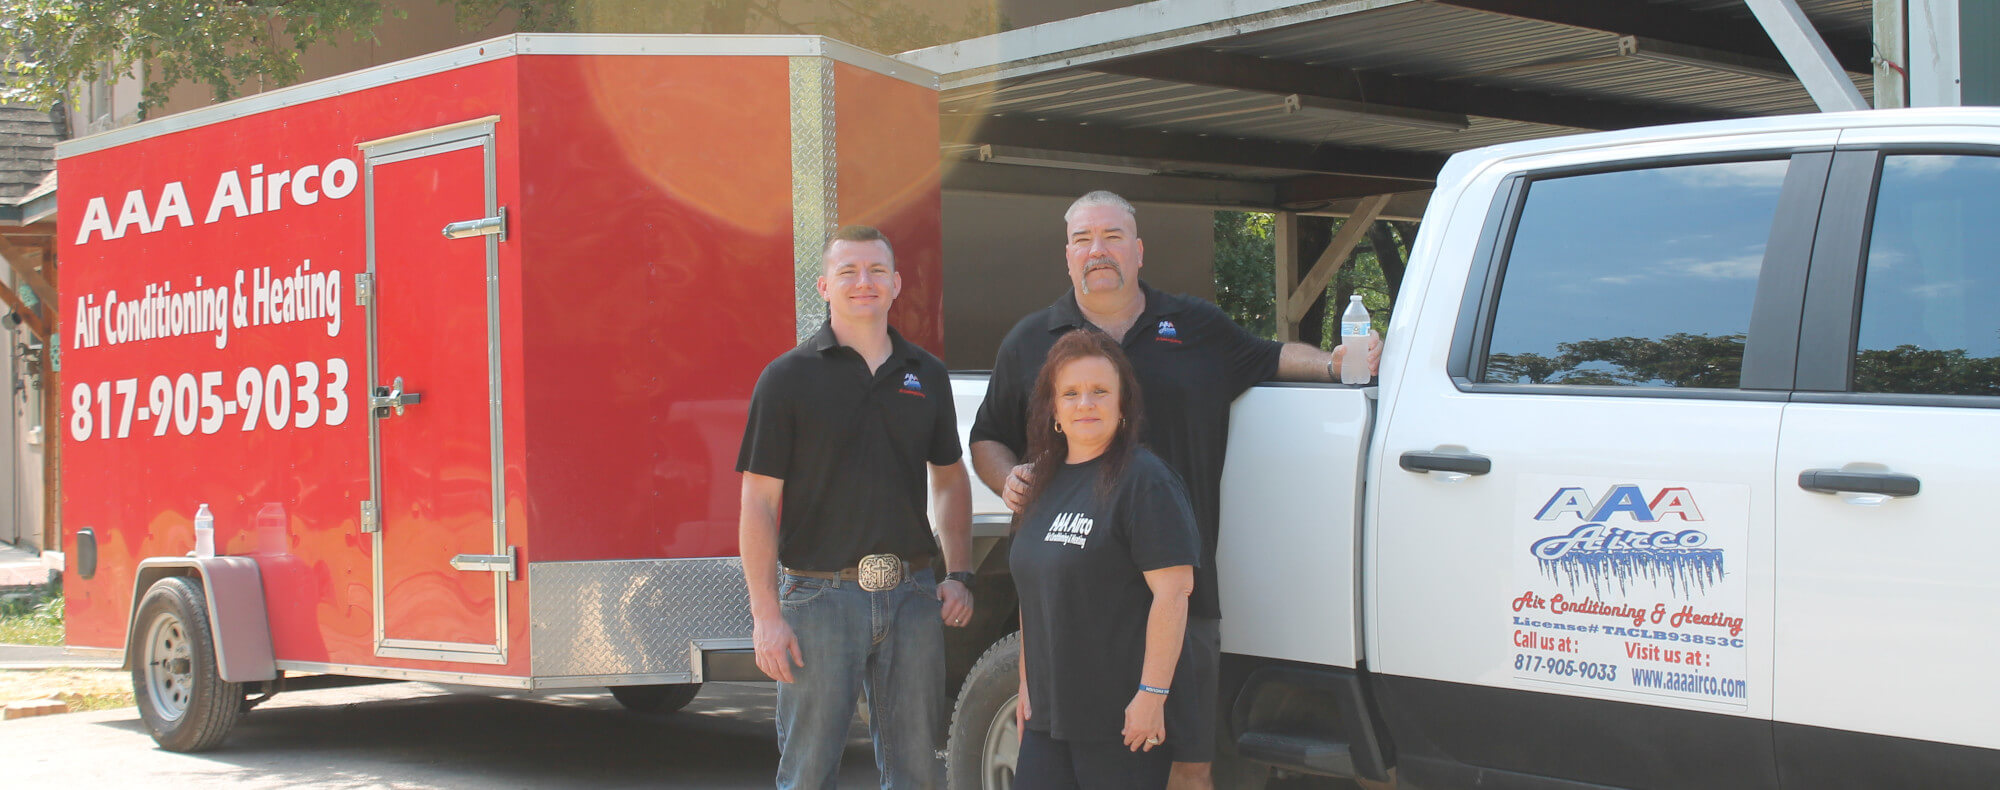 Air Conditioning Repairs delivered family style!